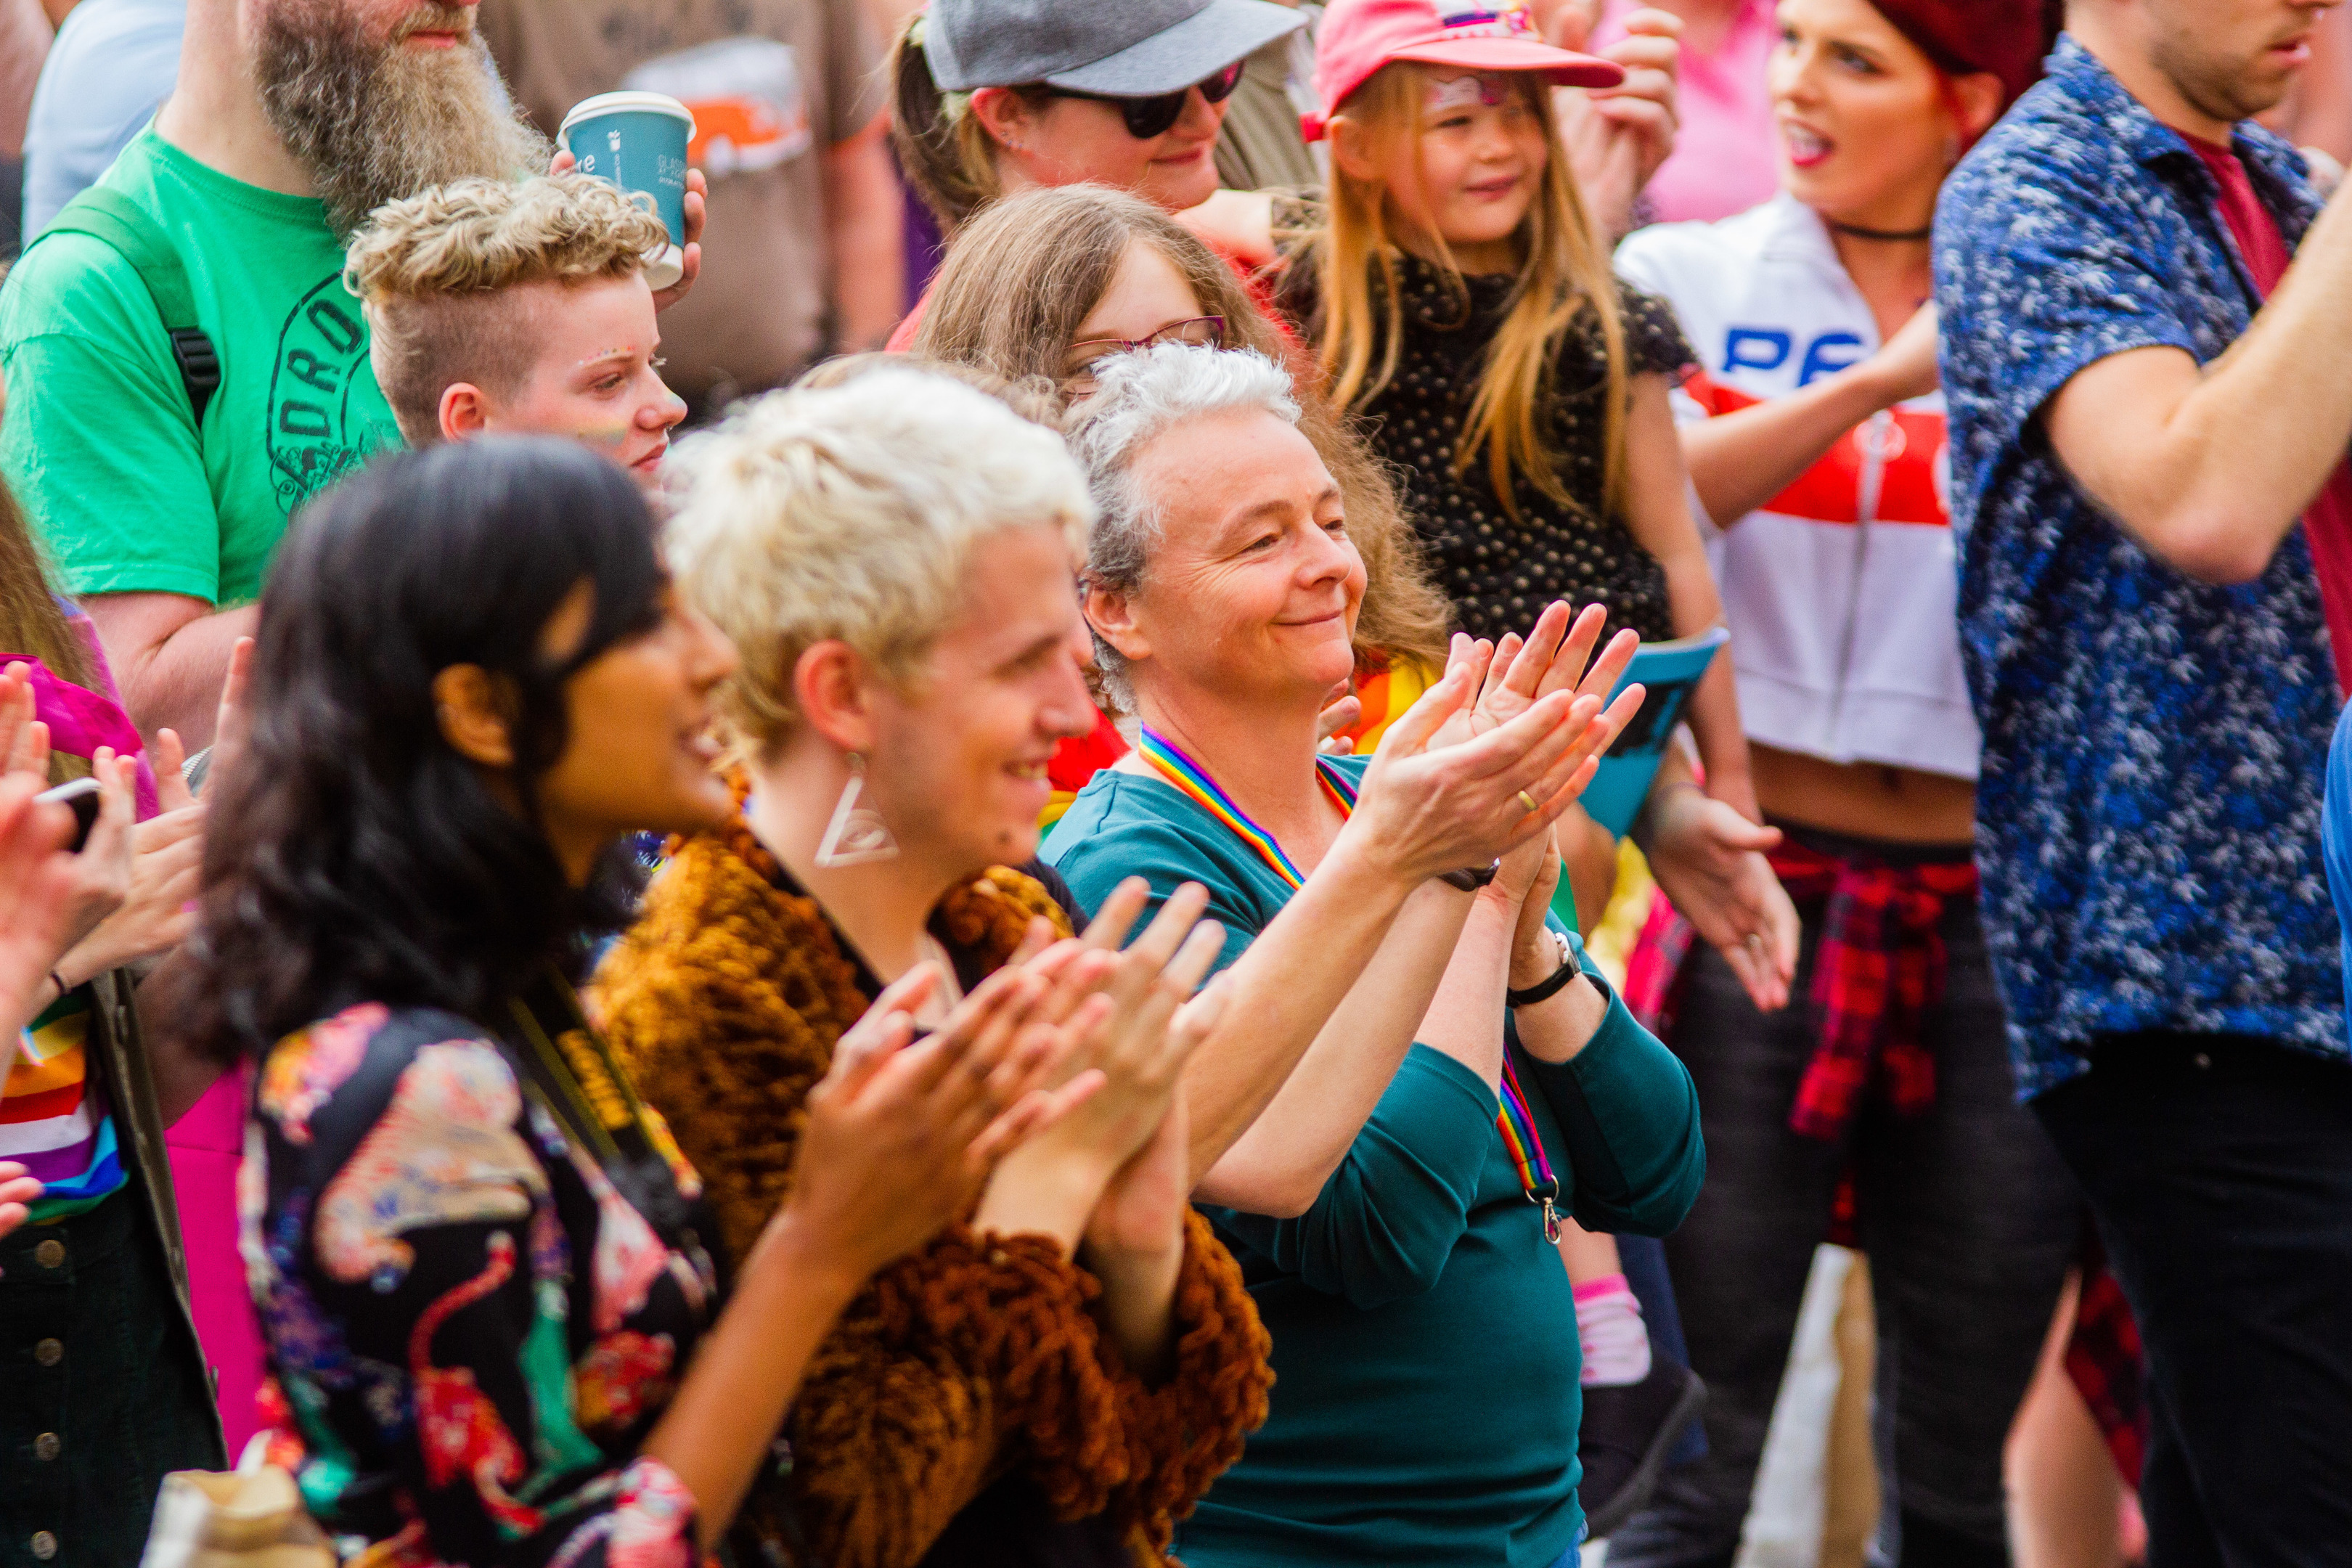 The first Perthshire Pride event in August 2018.